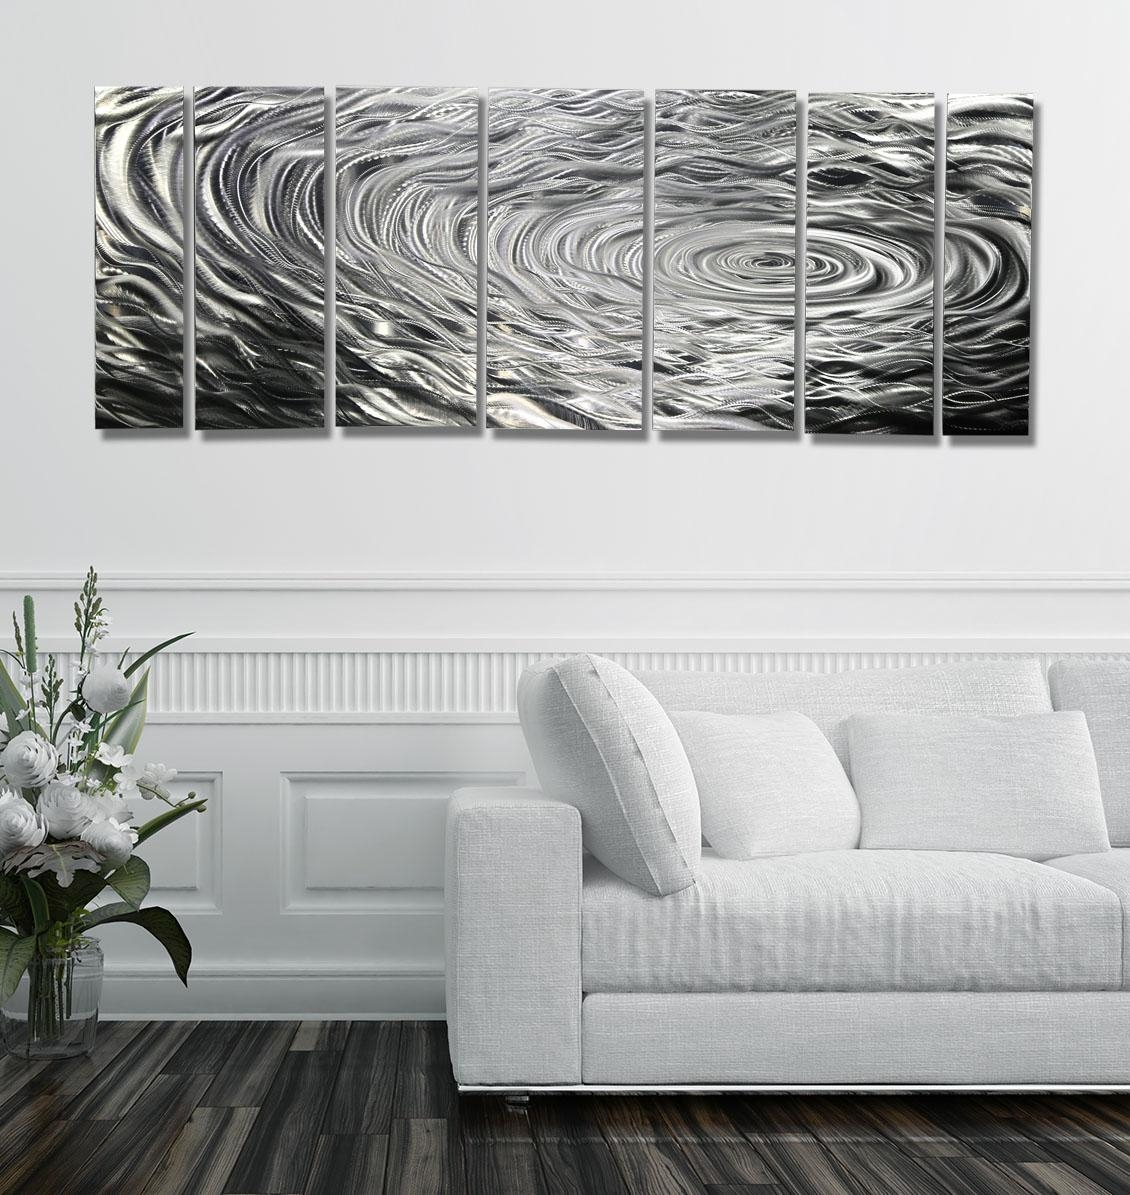 Modern Silver Abstract Metal Wall Art Home Decor – Ripple Effect Within Black Silver Wall Art (View 16 of 20)